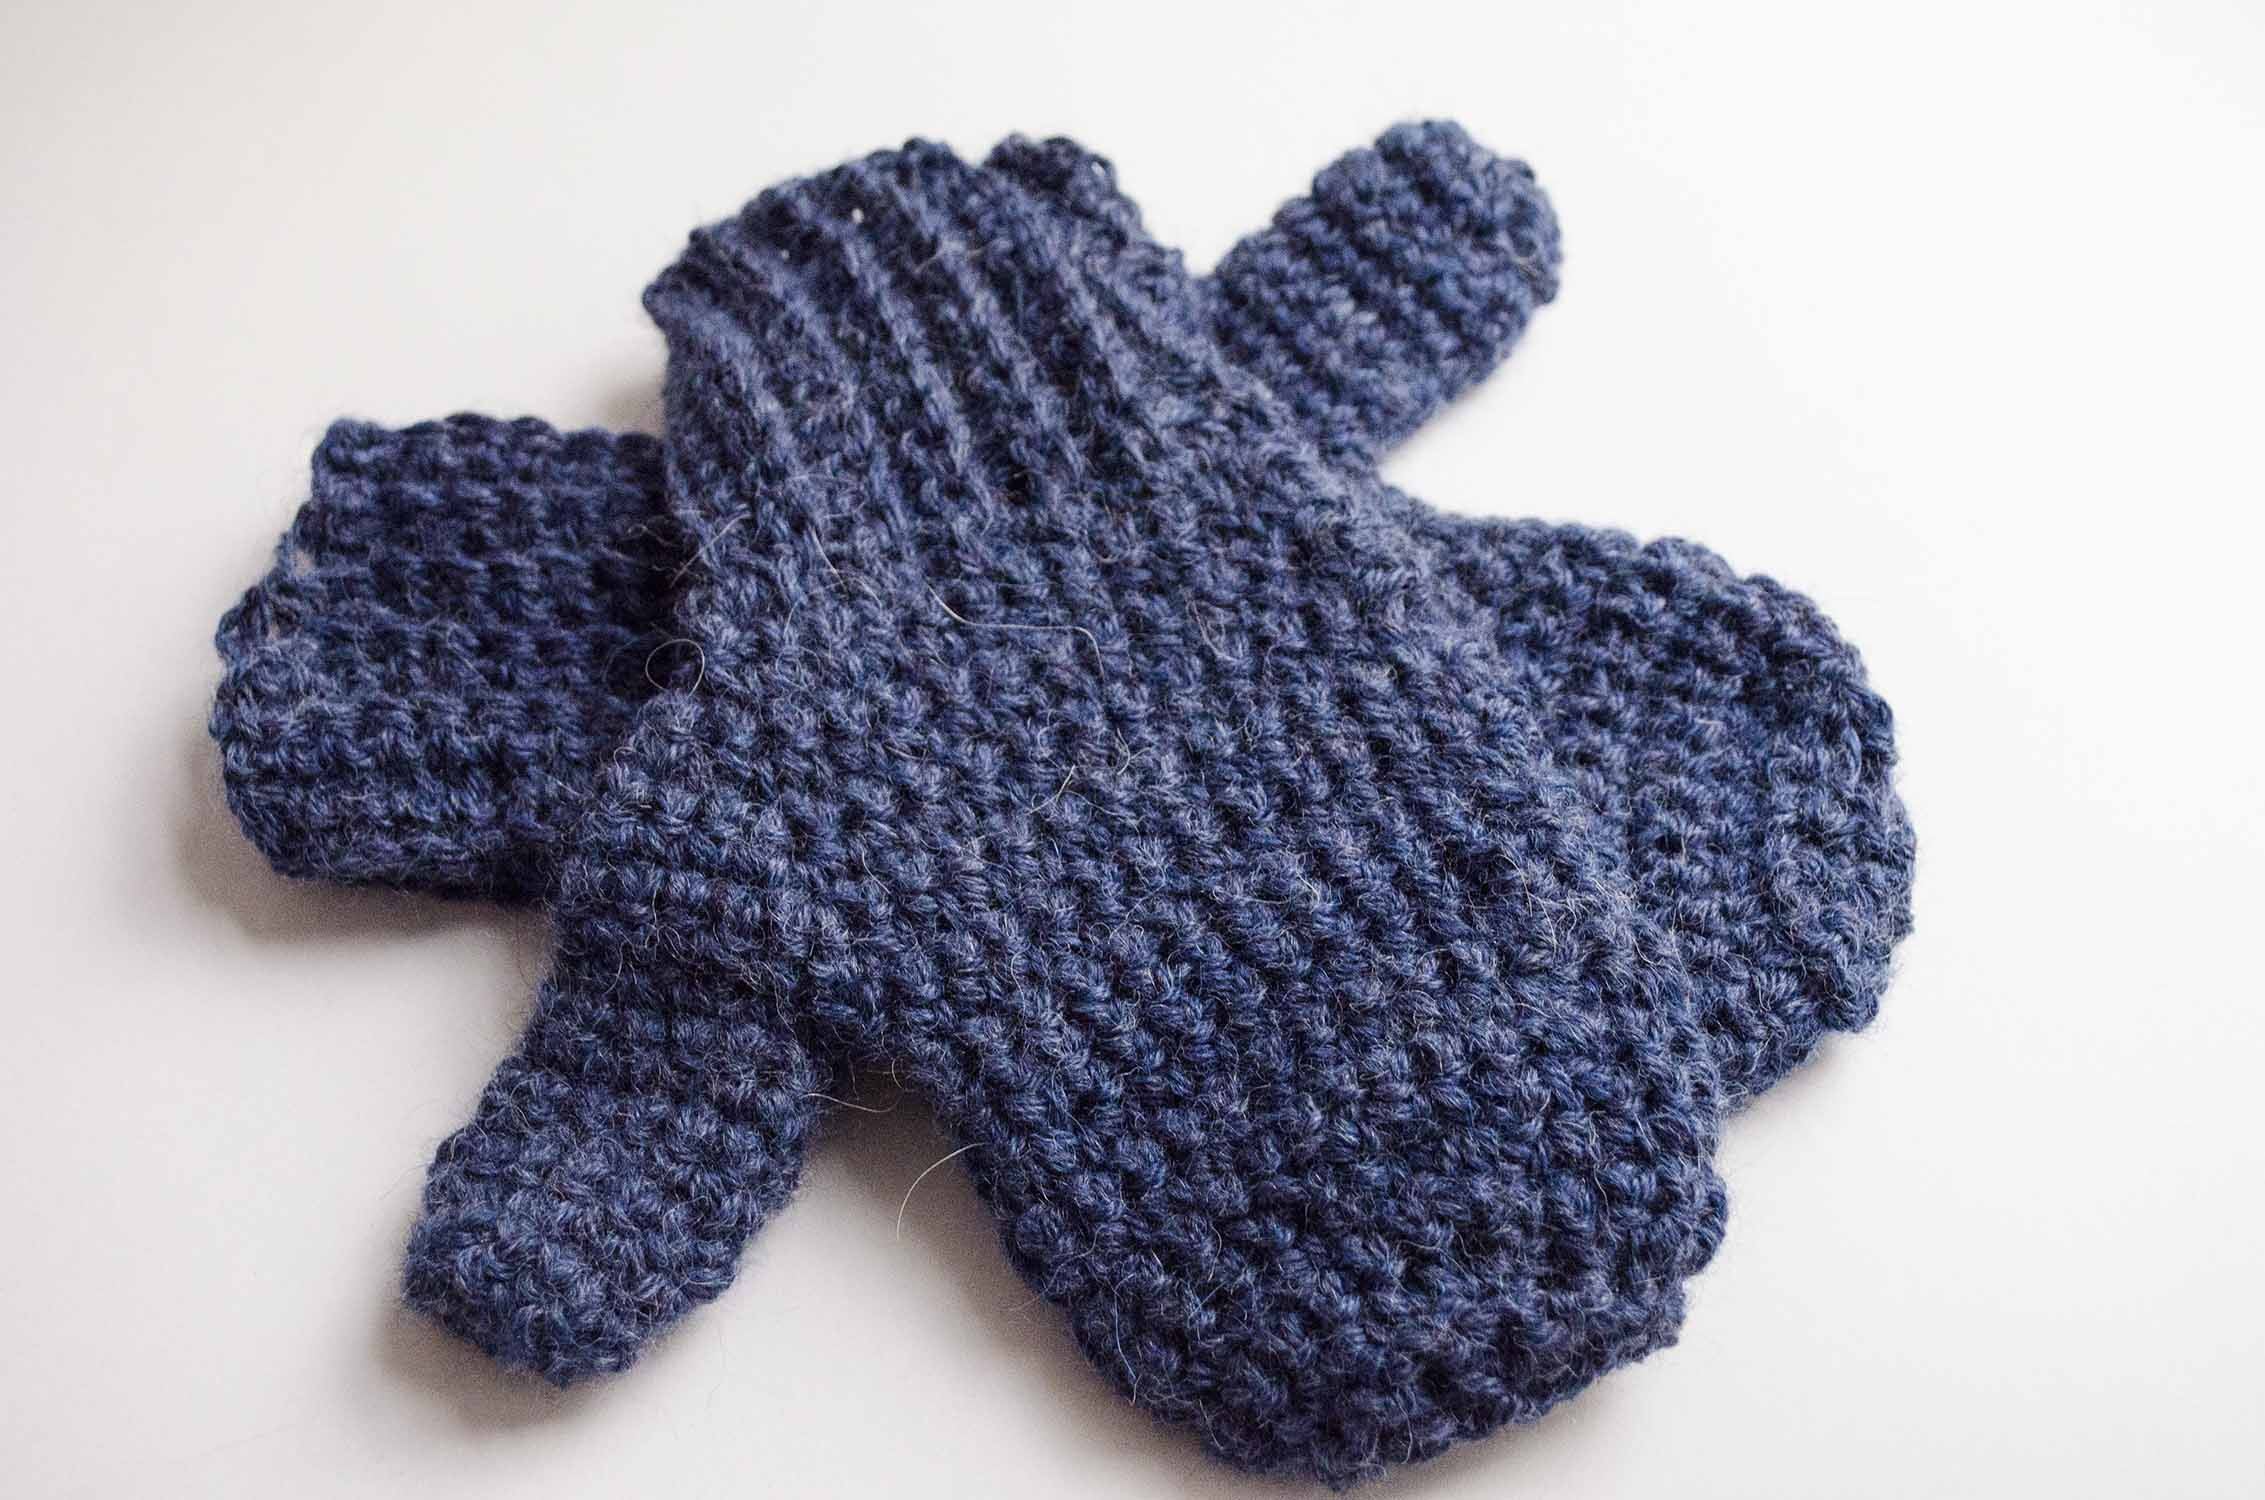 New Free Pattern Crochet Mittens the Blog Free Crochet Mitten Patterns Of Gorgeous 41 Ideas Free Crochet Mitten Patterns